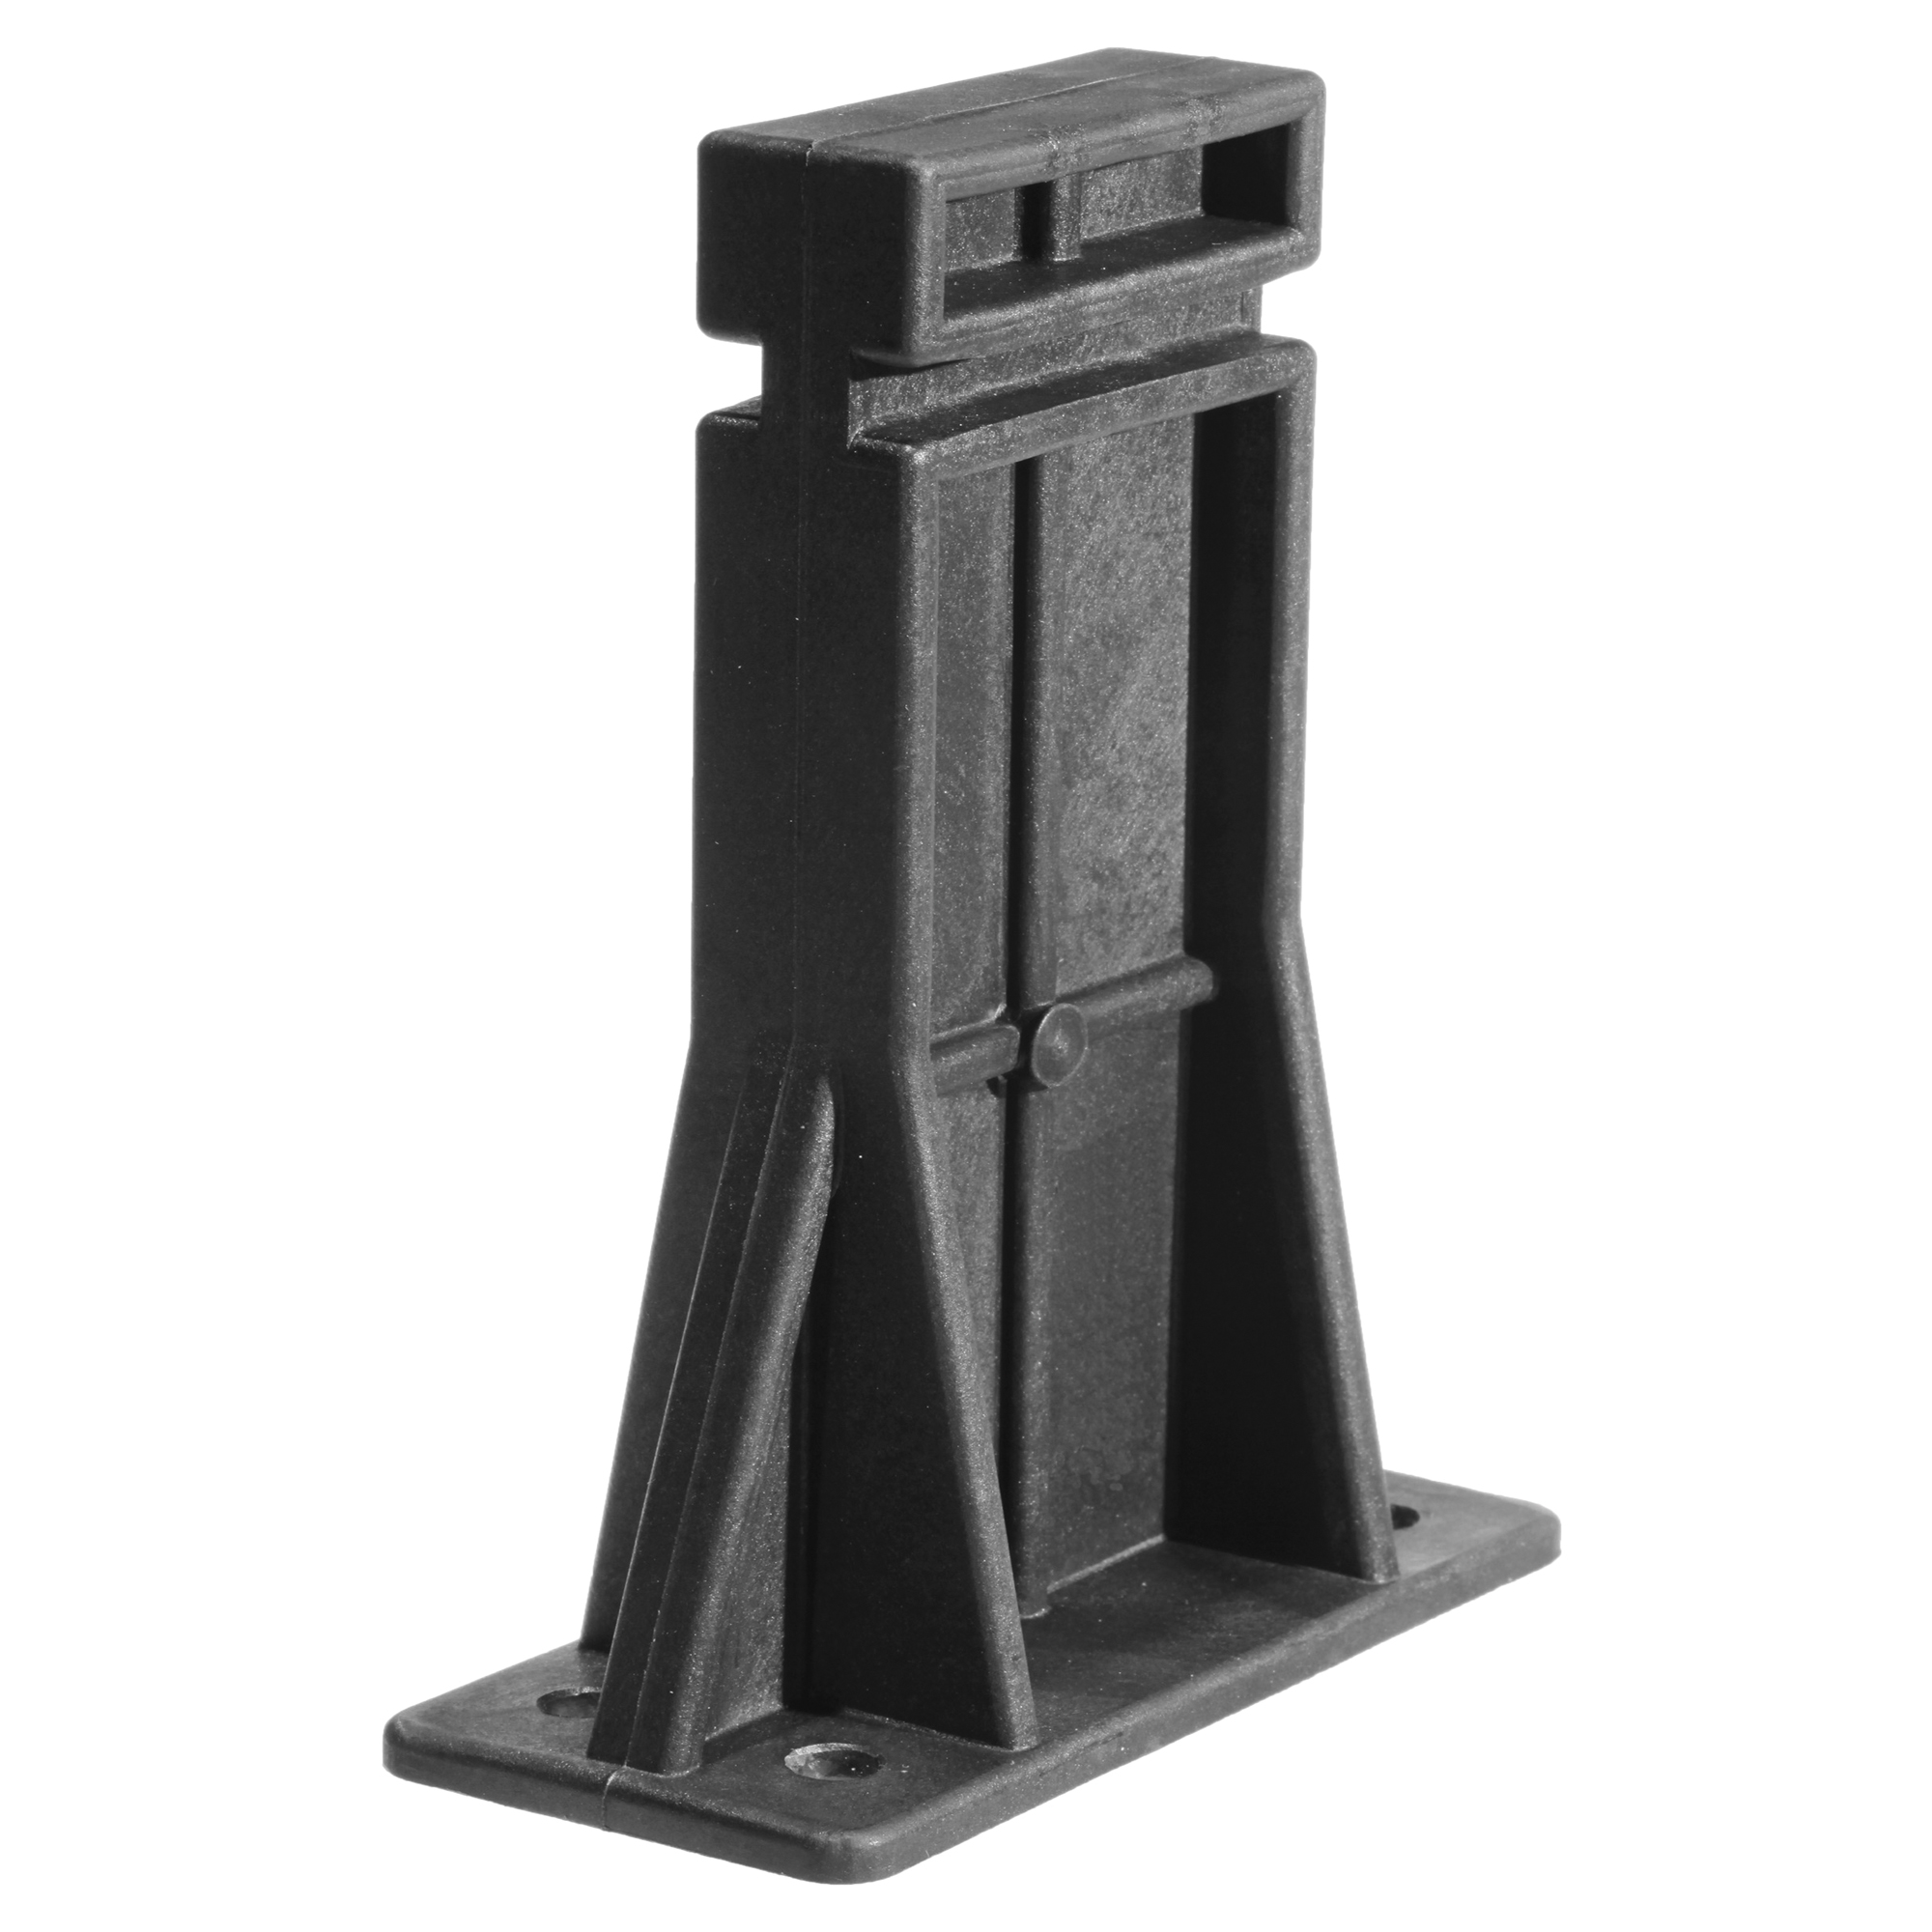 "This ERGO Armorers Block is one of the most useful maintenance accessories available for an AR-10. Simply bolt or clamp securely to a bench or other work surface"" place an AR rifle onto the block inside the magazine well and the rifle is held in place for cleaning"" maintenance or storage."